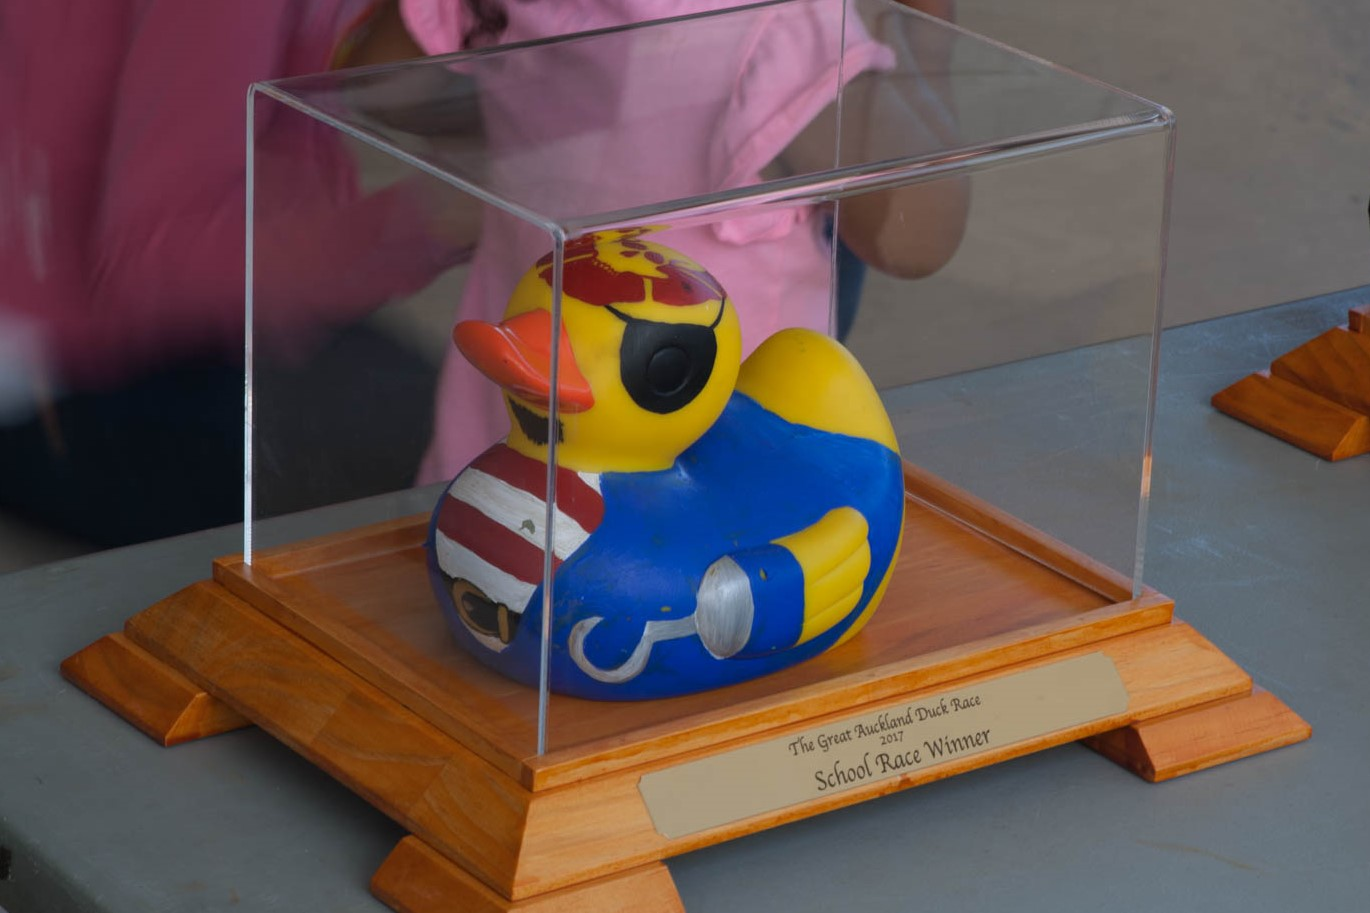 11.45am - PRIZE-GIVING    - Winners of the Business & School races & the Best-Dressed ducks from the same races will be presented with their ducks in these gorgeous presentation cases to take away, keep & display pride of place    - Winners of the Business Race & School races will also choose another great prize to take home    - Winners of the Everybody Race will take home Westfield vouchers